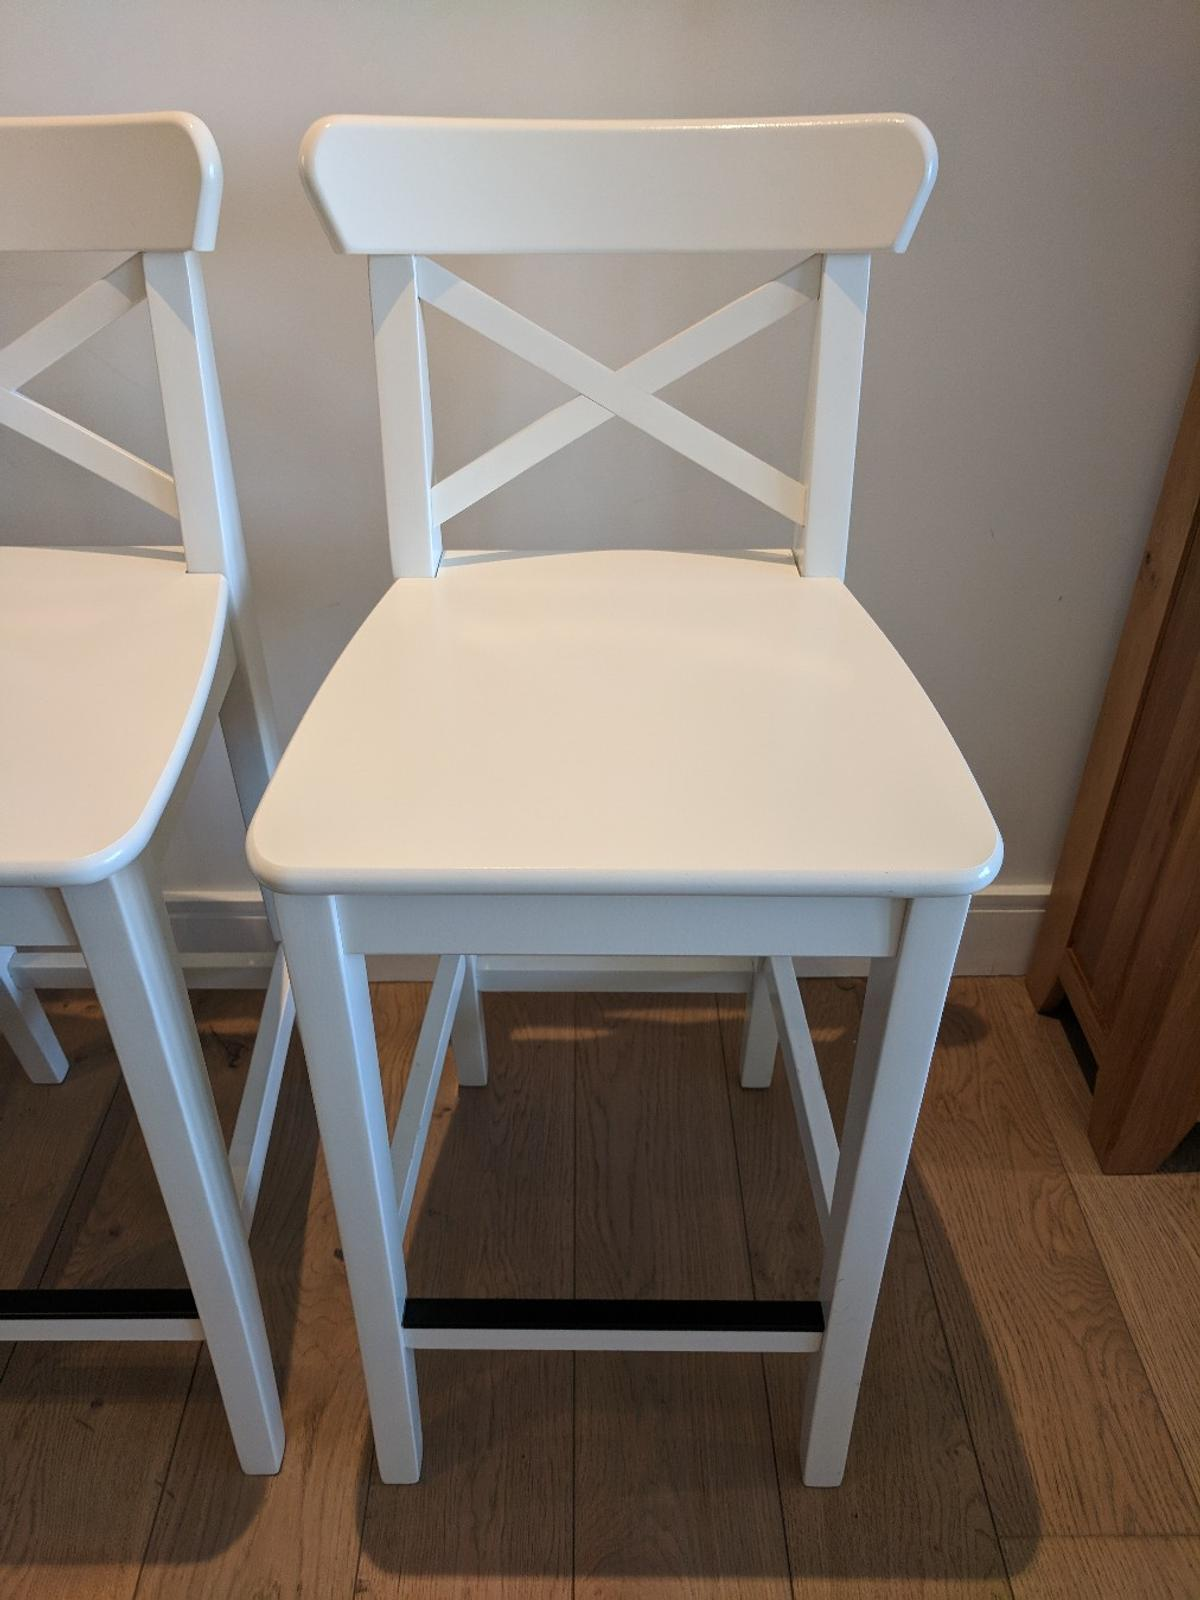 Terrific 2 White Ikea Ingolf Bar Stools With Backrest In Tw8 Hounslow Andrewgaddart Wooden Chair Designs For Living Room Andrewgaddartcom